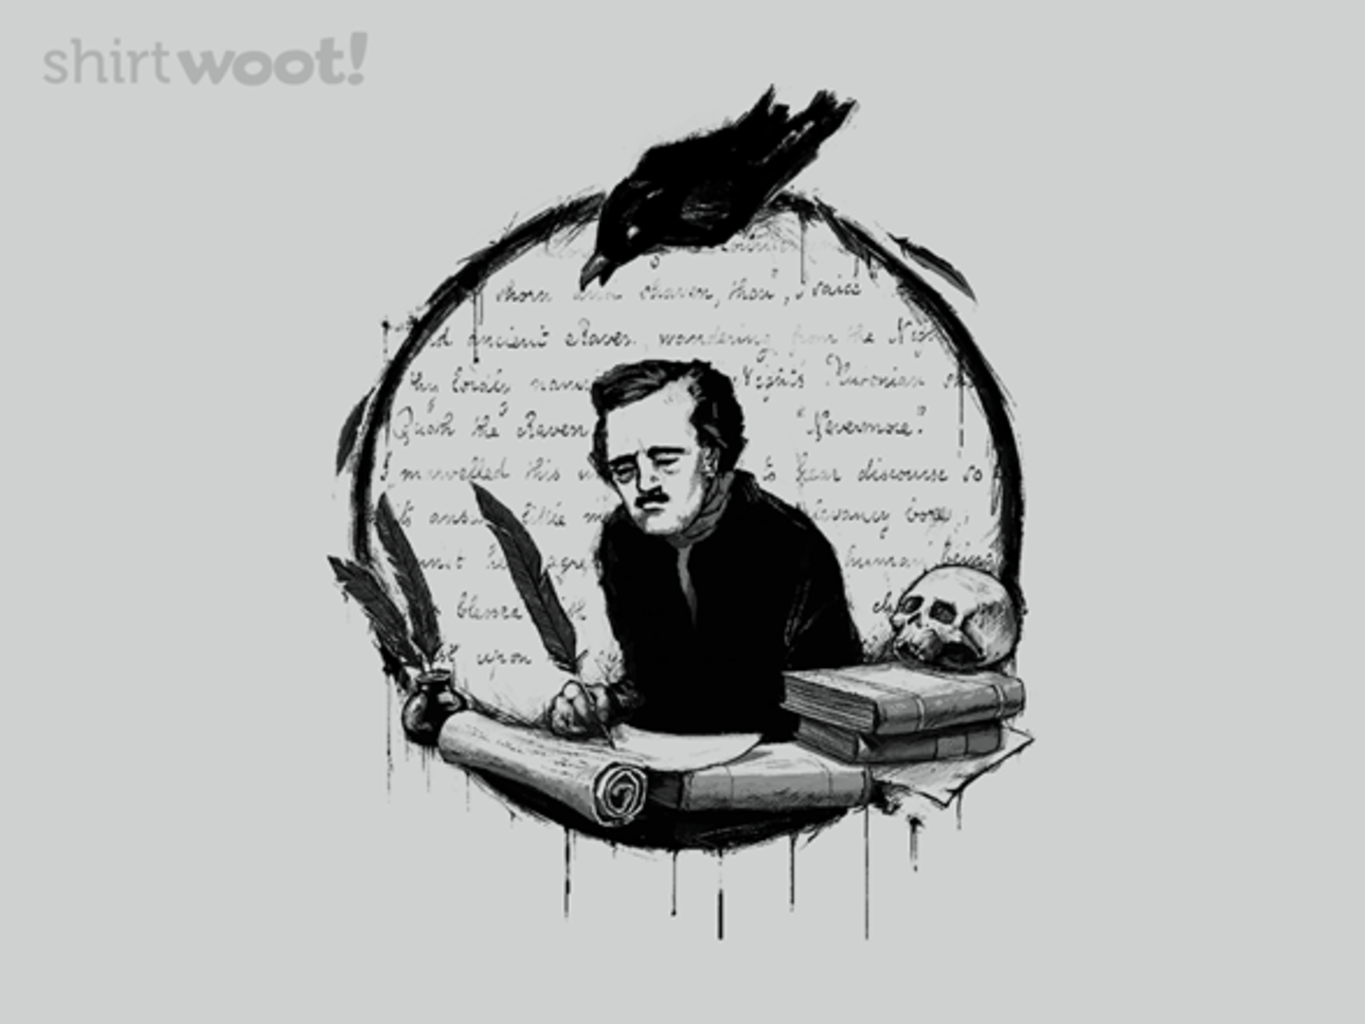 Woot!: A Raven and His Writer